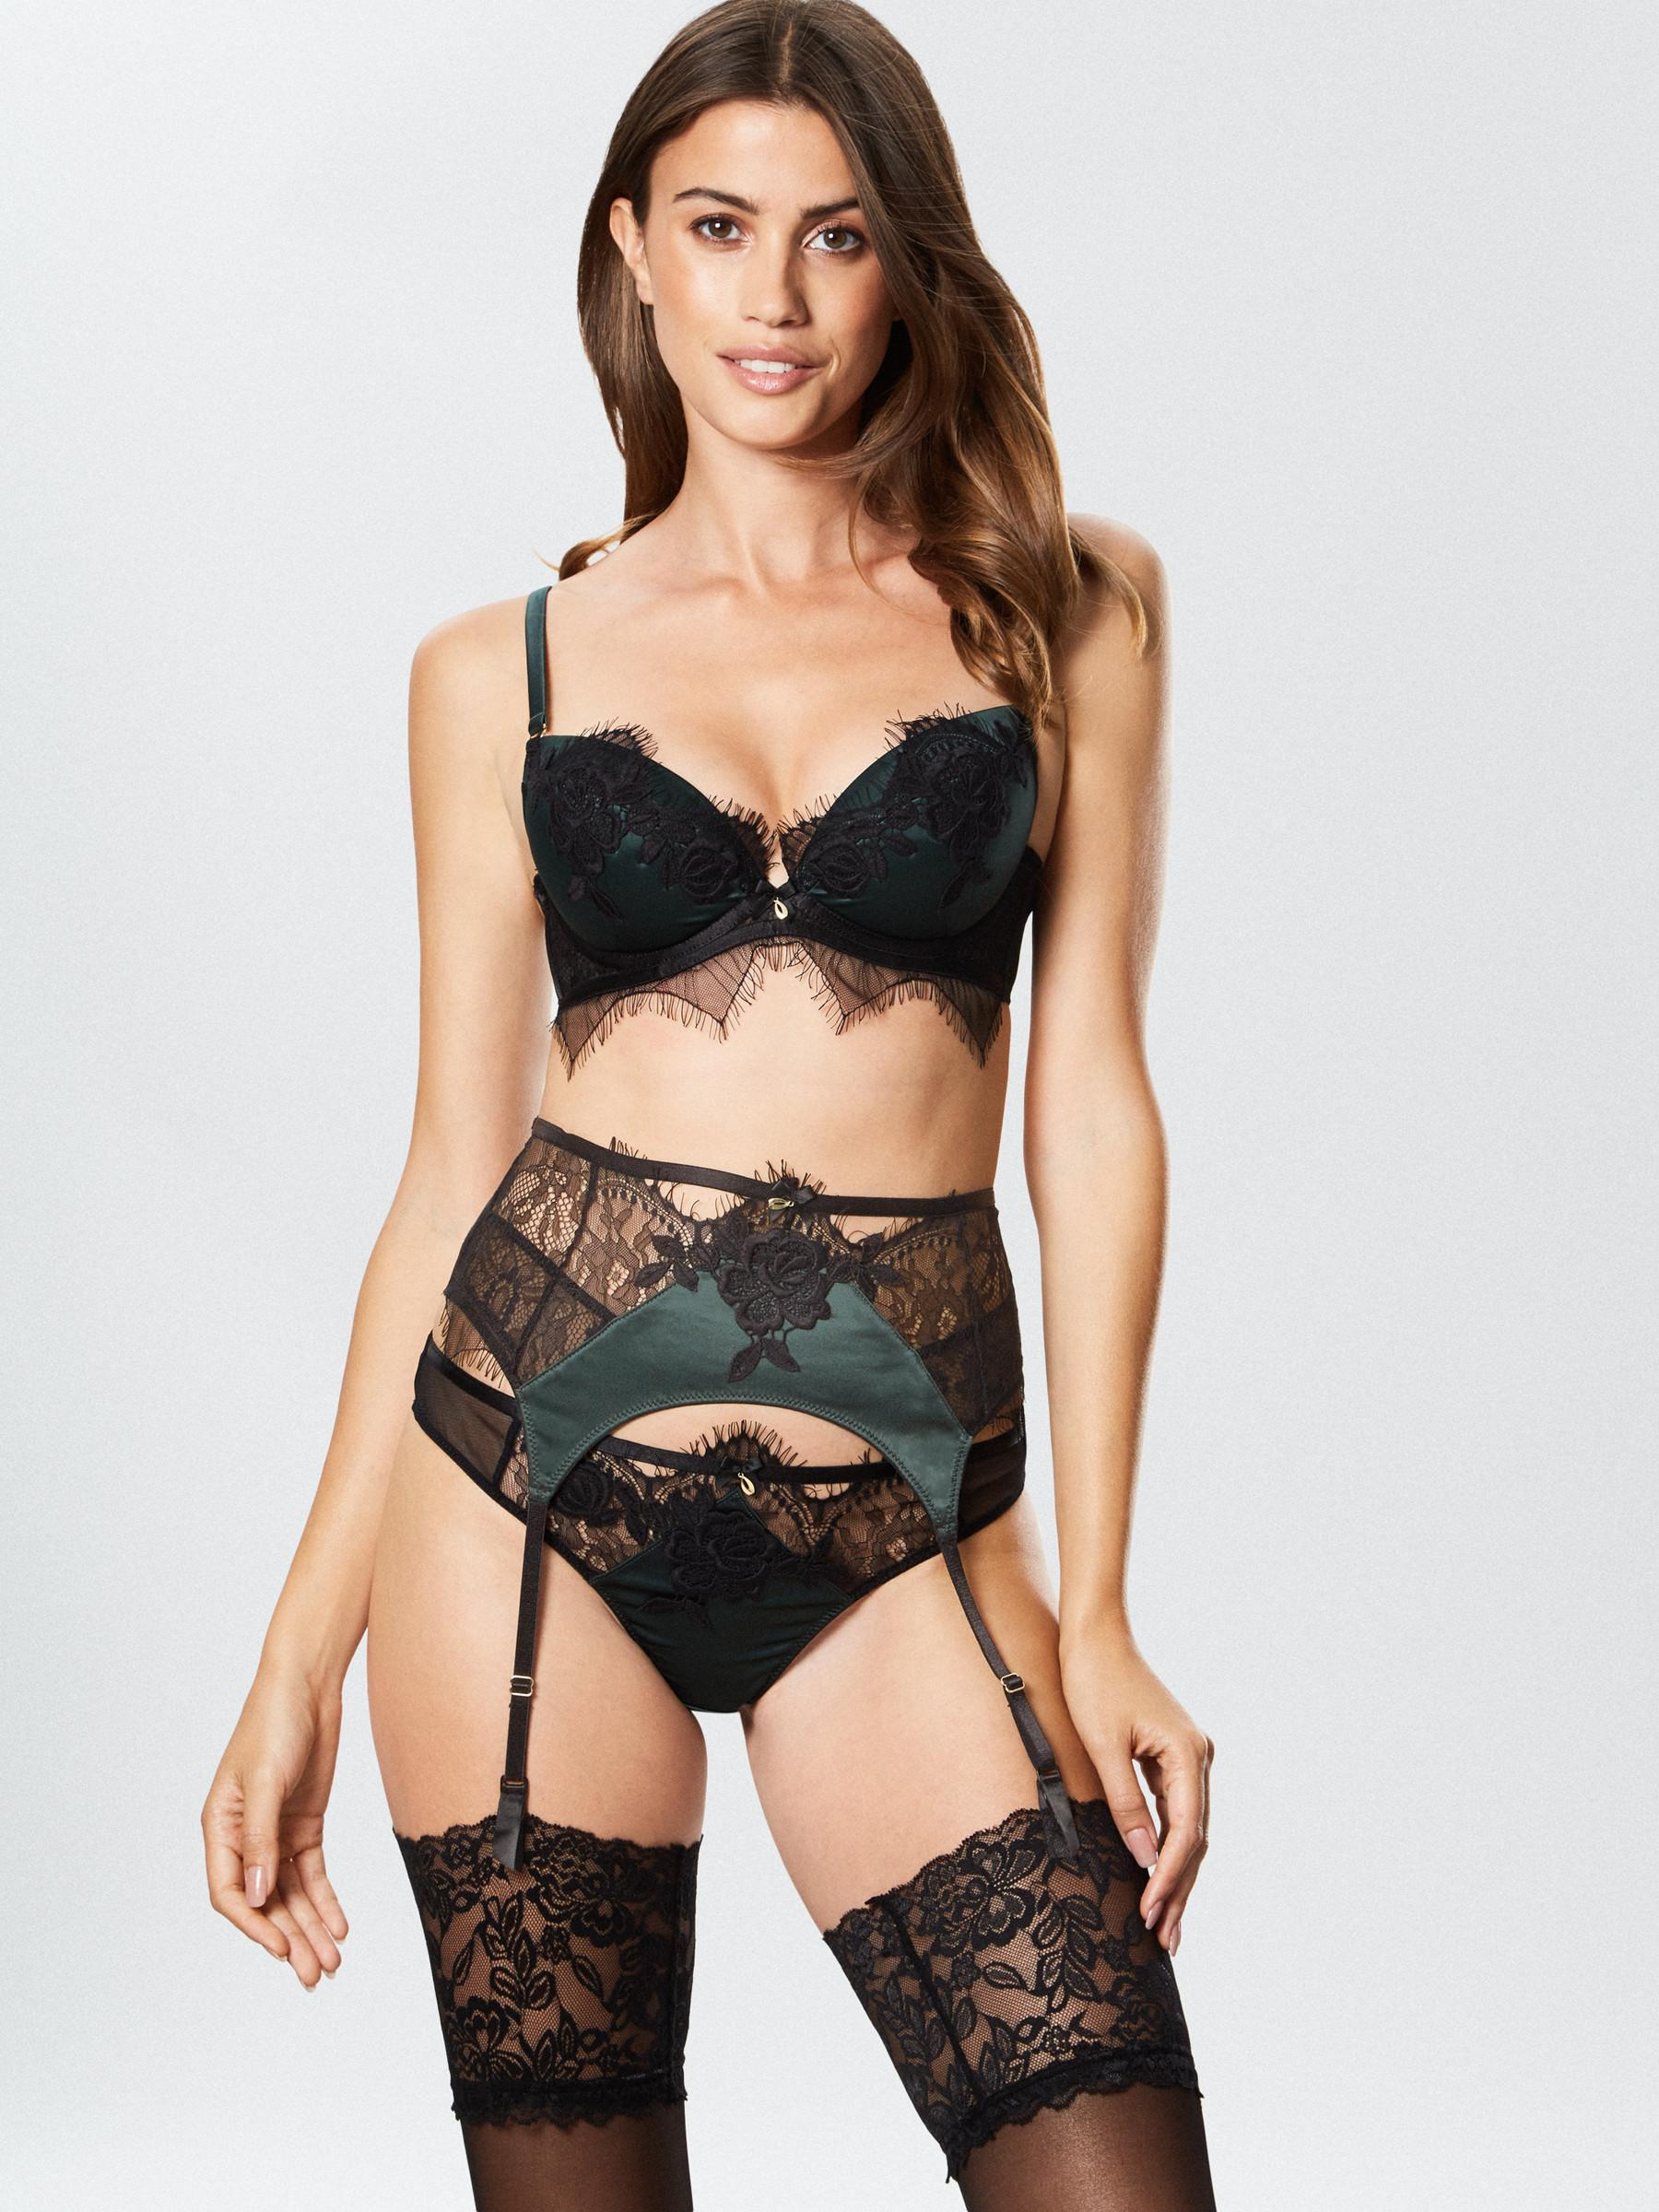 b3773569aafc Ann Summers Womens Forest Lace Thong G-String Knickers Sexy Lingerie  Underwear